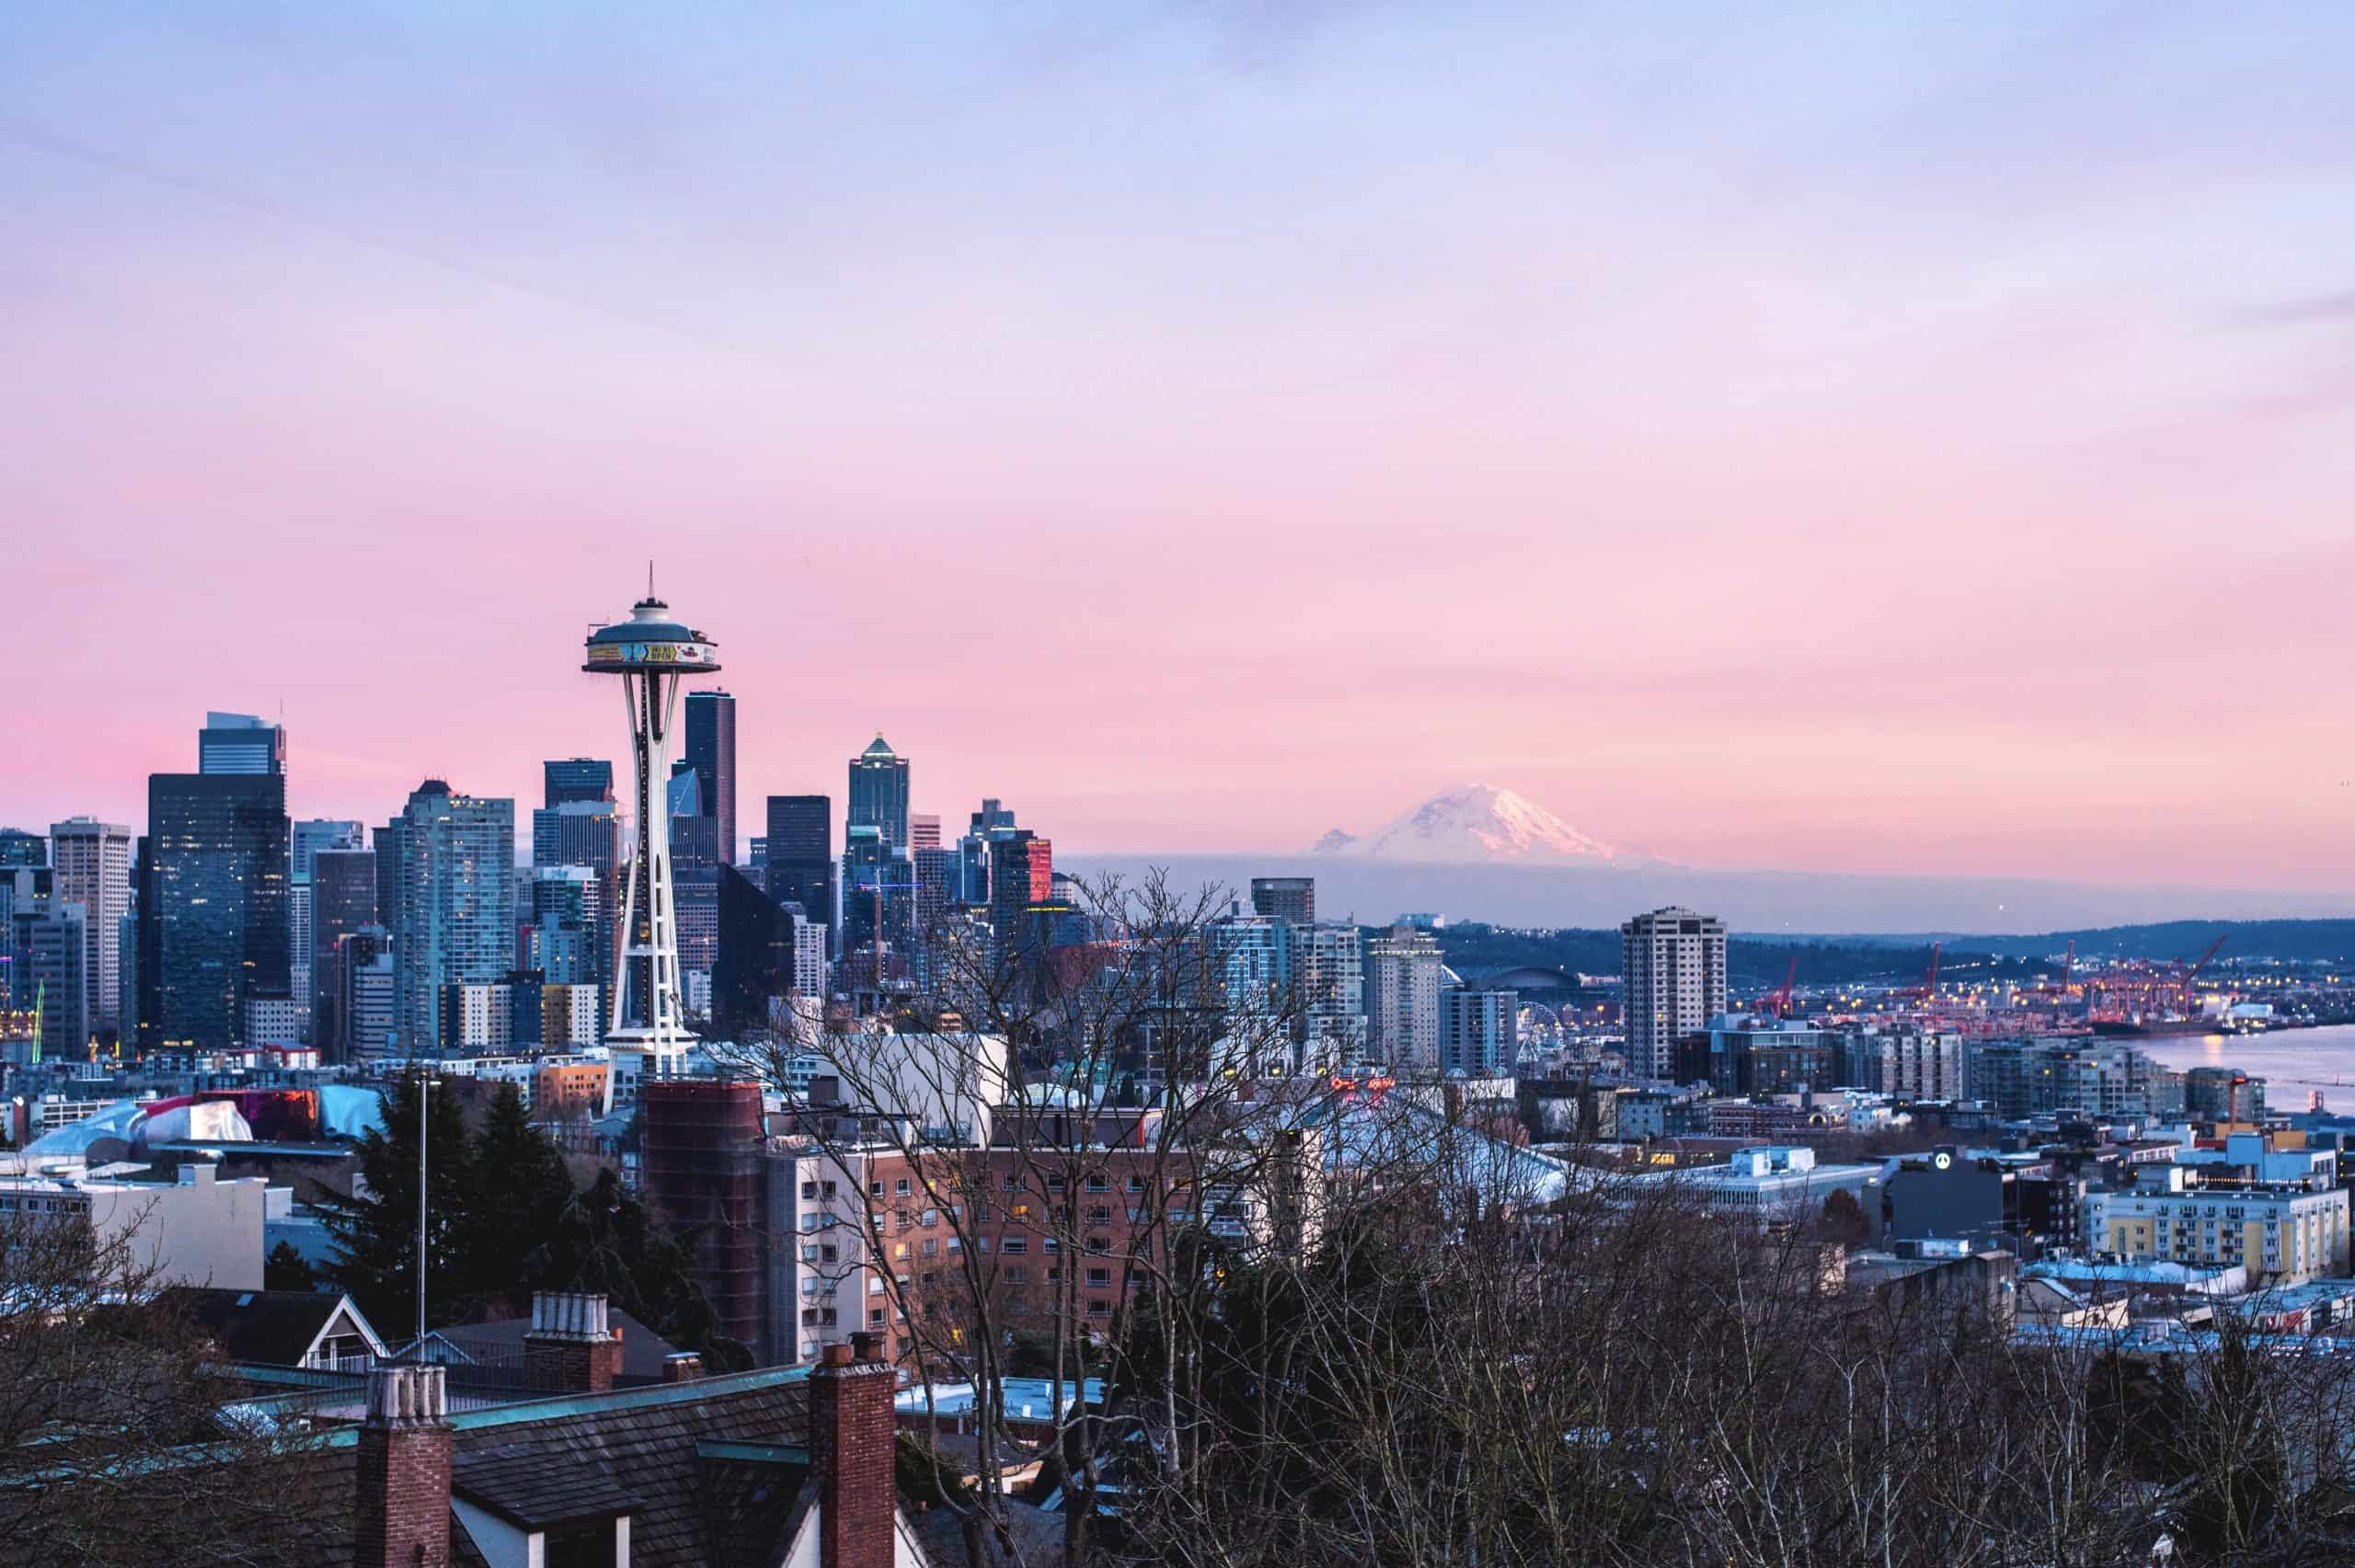 Our 3 days in Seattle itinerary is full of our favorite must-see attractions, coffee shops, restaurants, and hikes--perfect for first-timers!